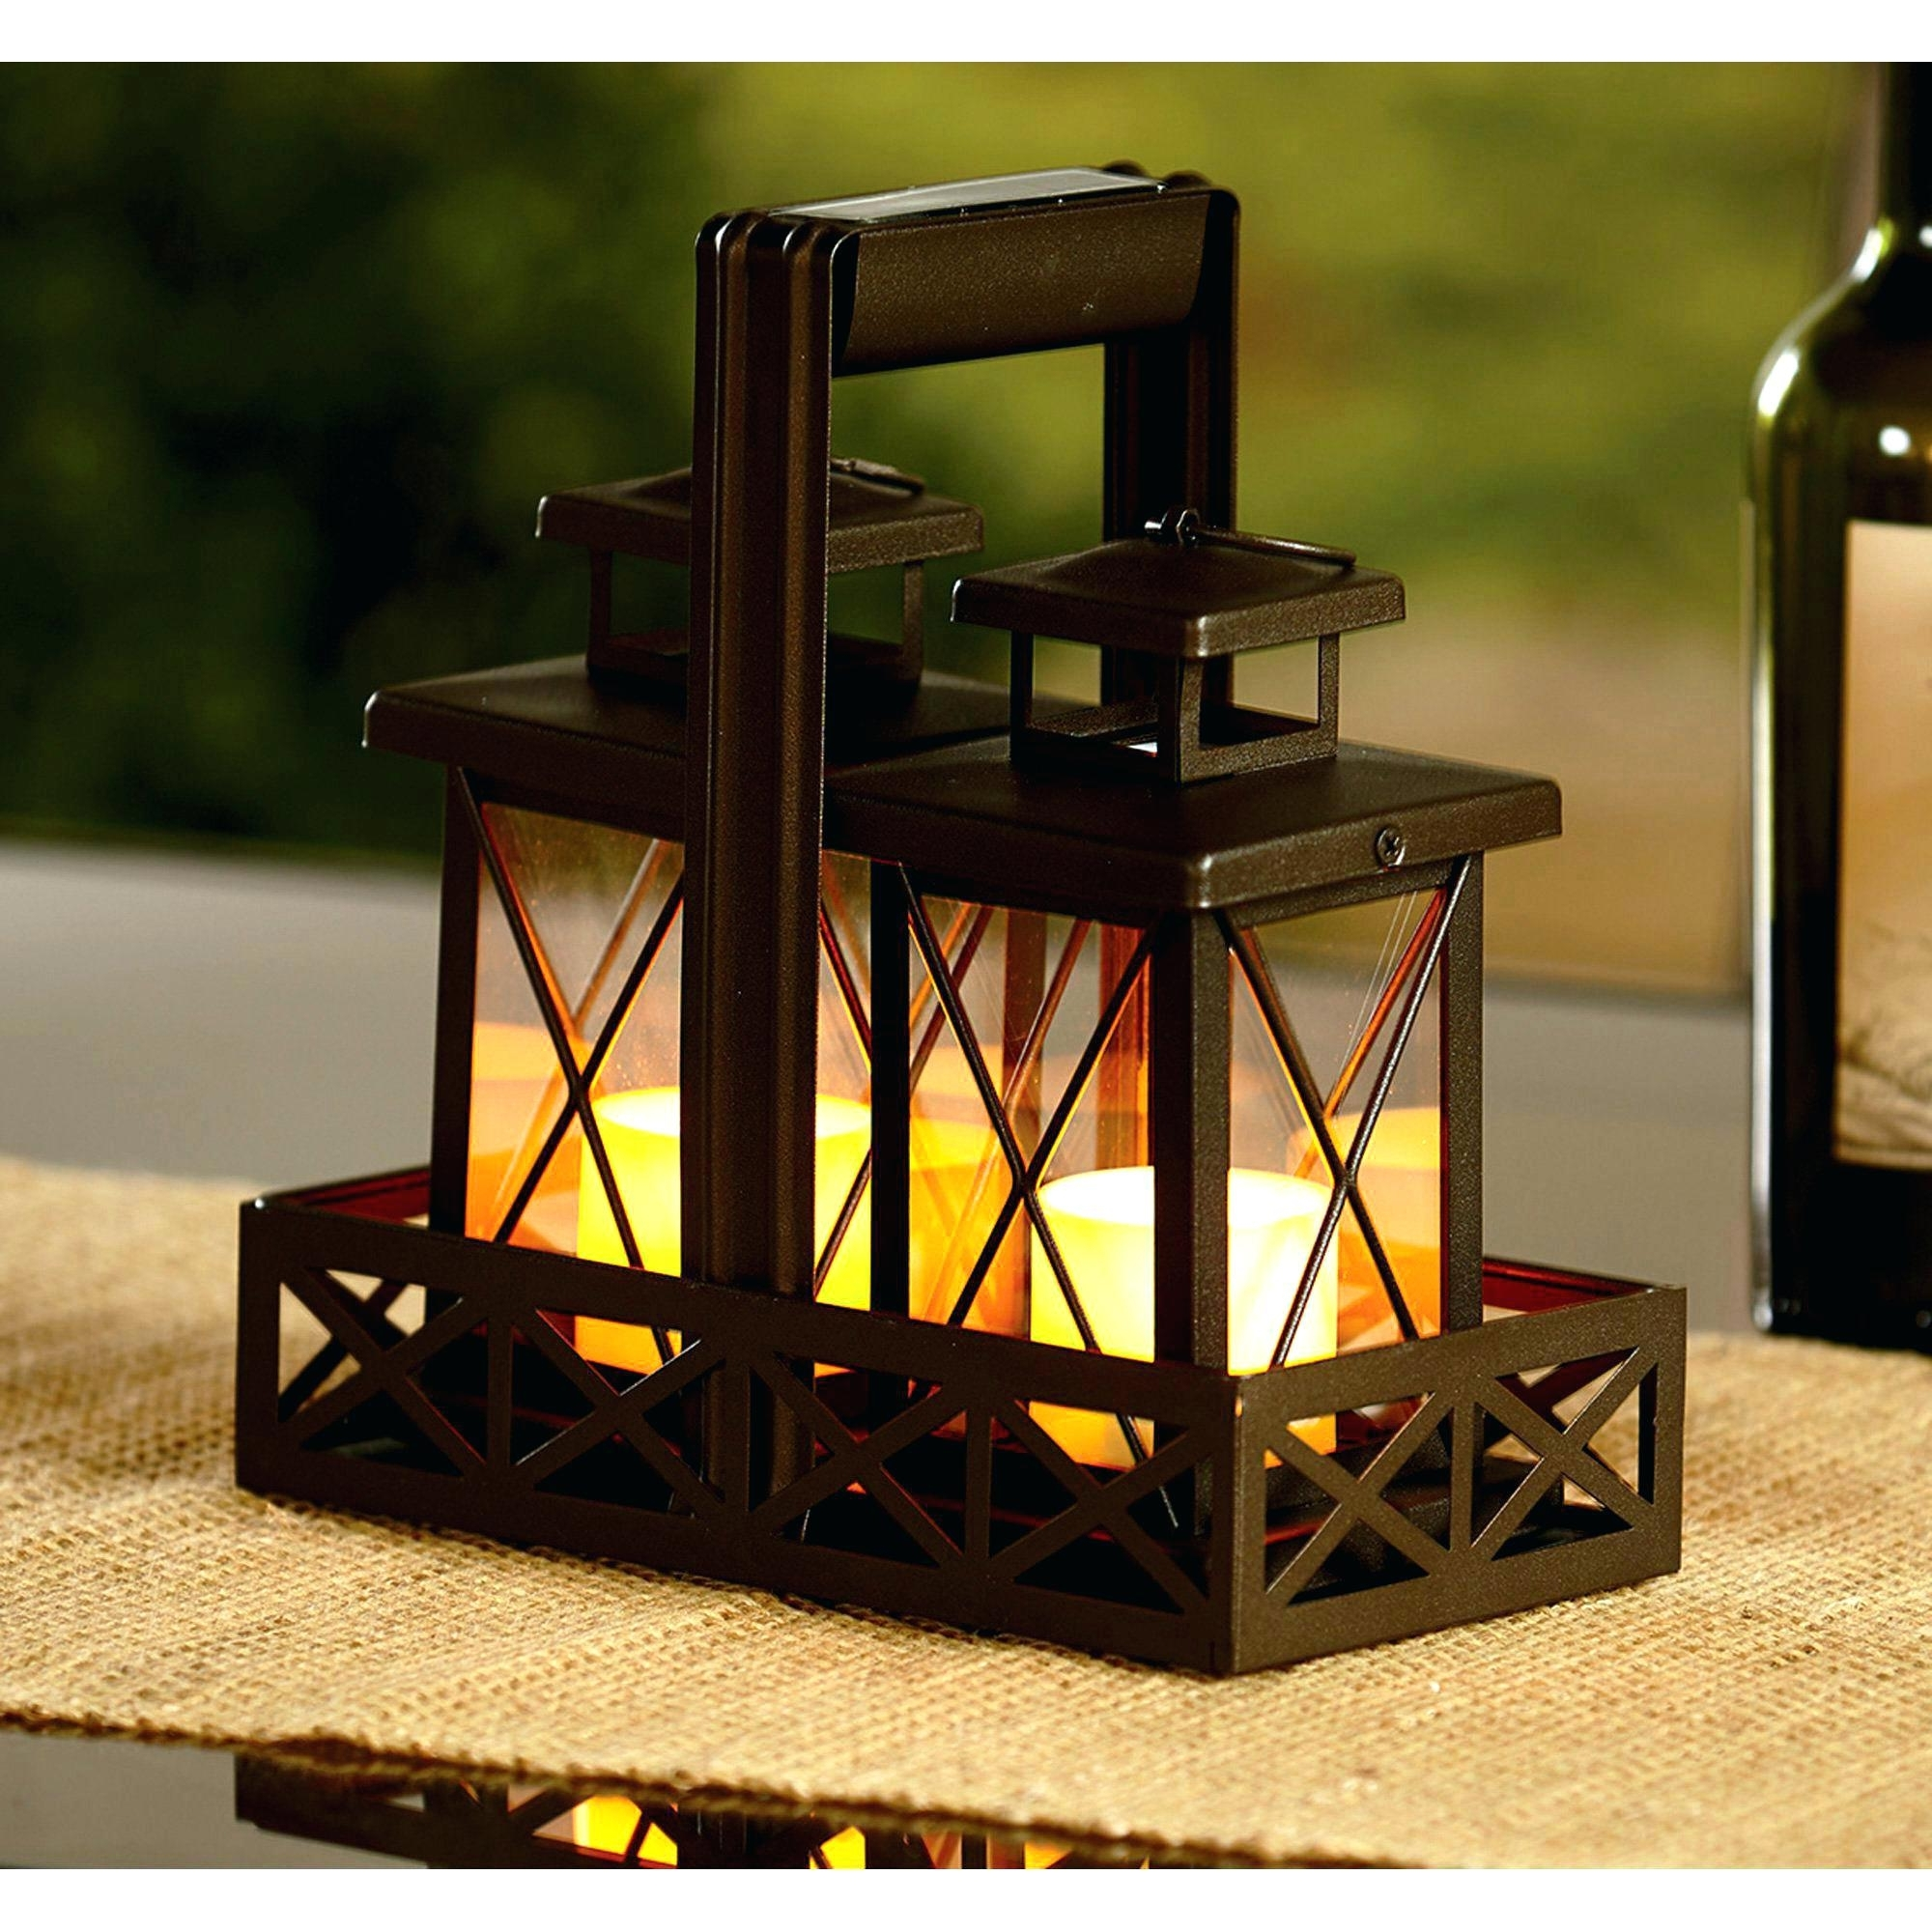 Latest Outdoor Oil Lamps For Patio Table Sale – Pocketworldcupschedule Within Outdoor Oil Lanterns For Patio (View 6 of 20)